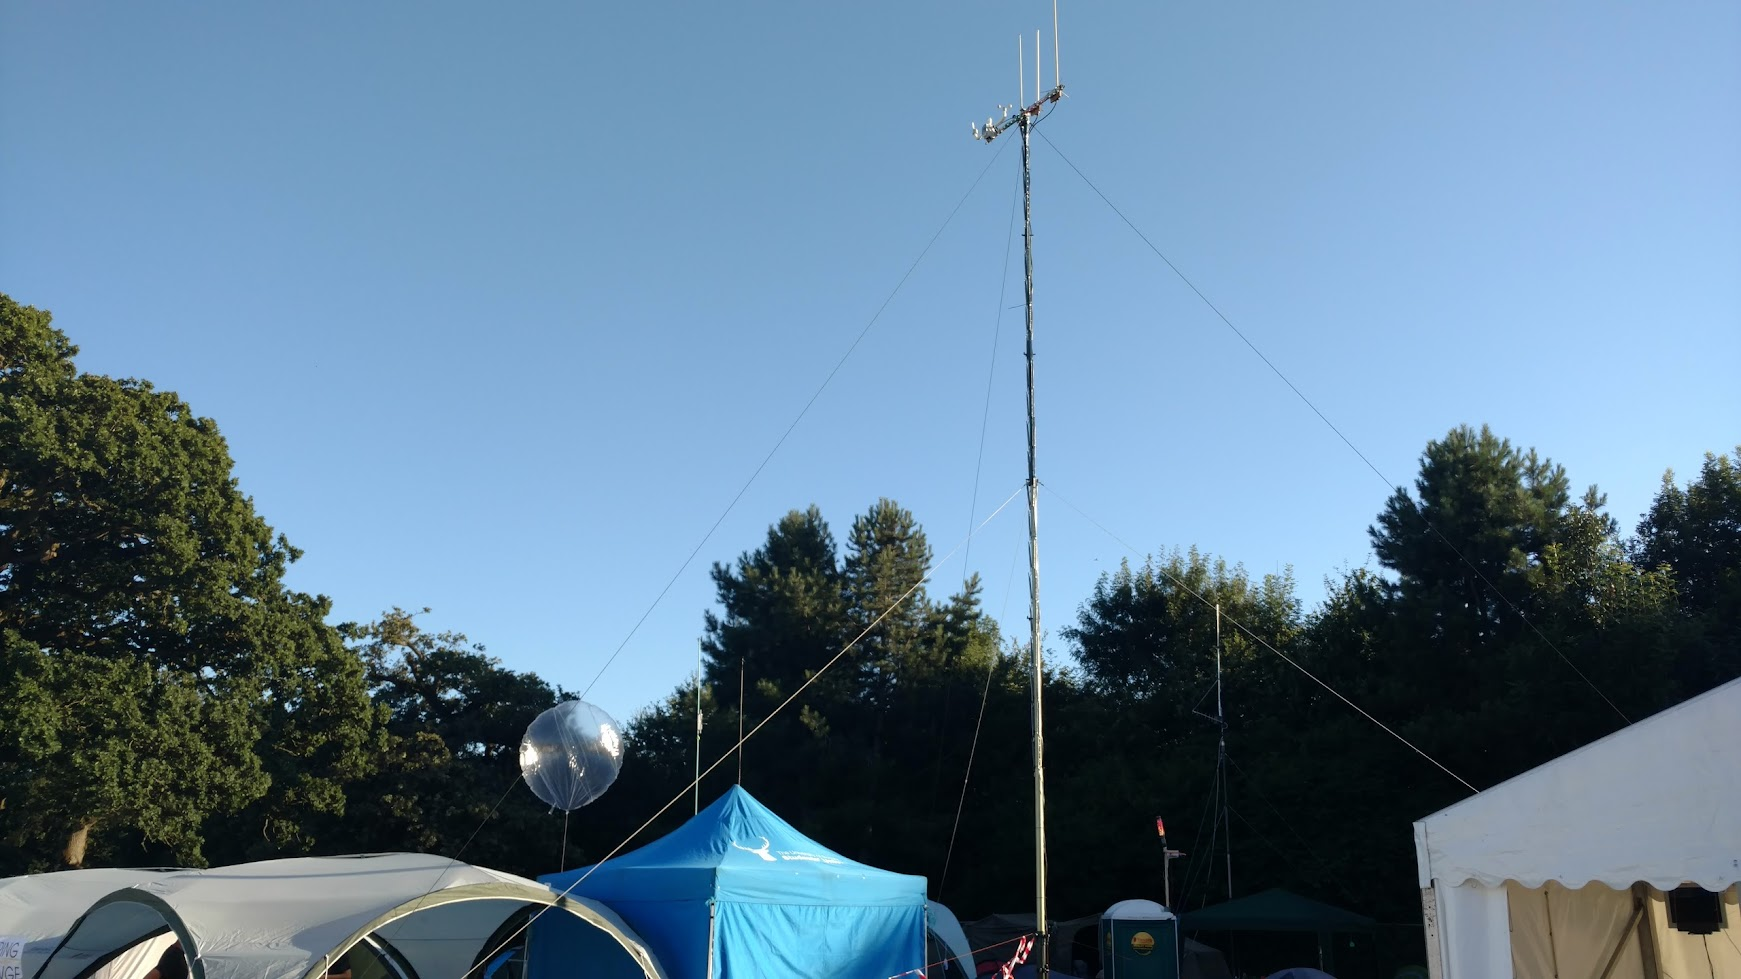 HABville's weather balloon tracking station